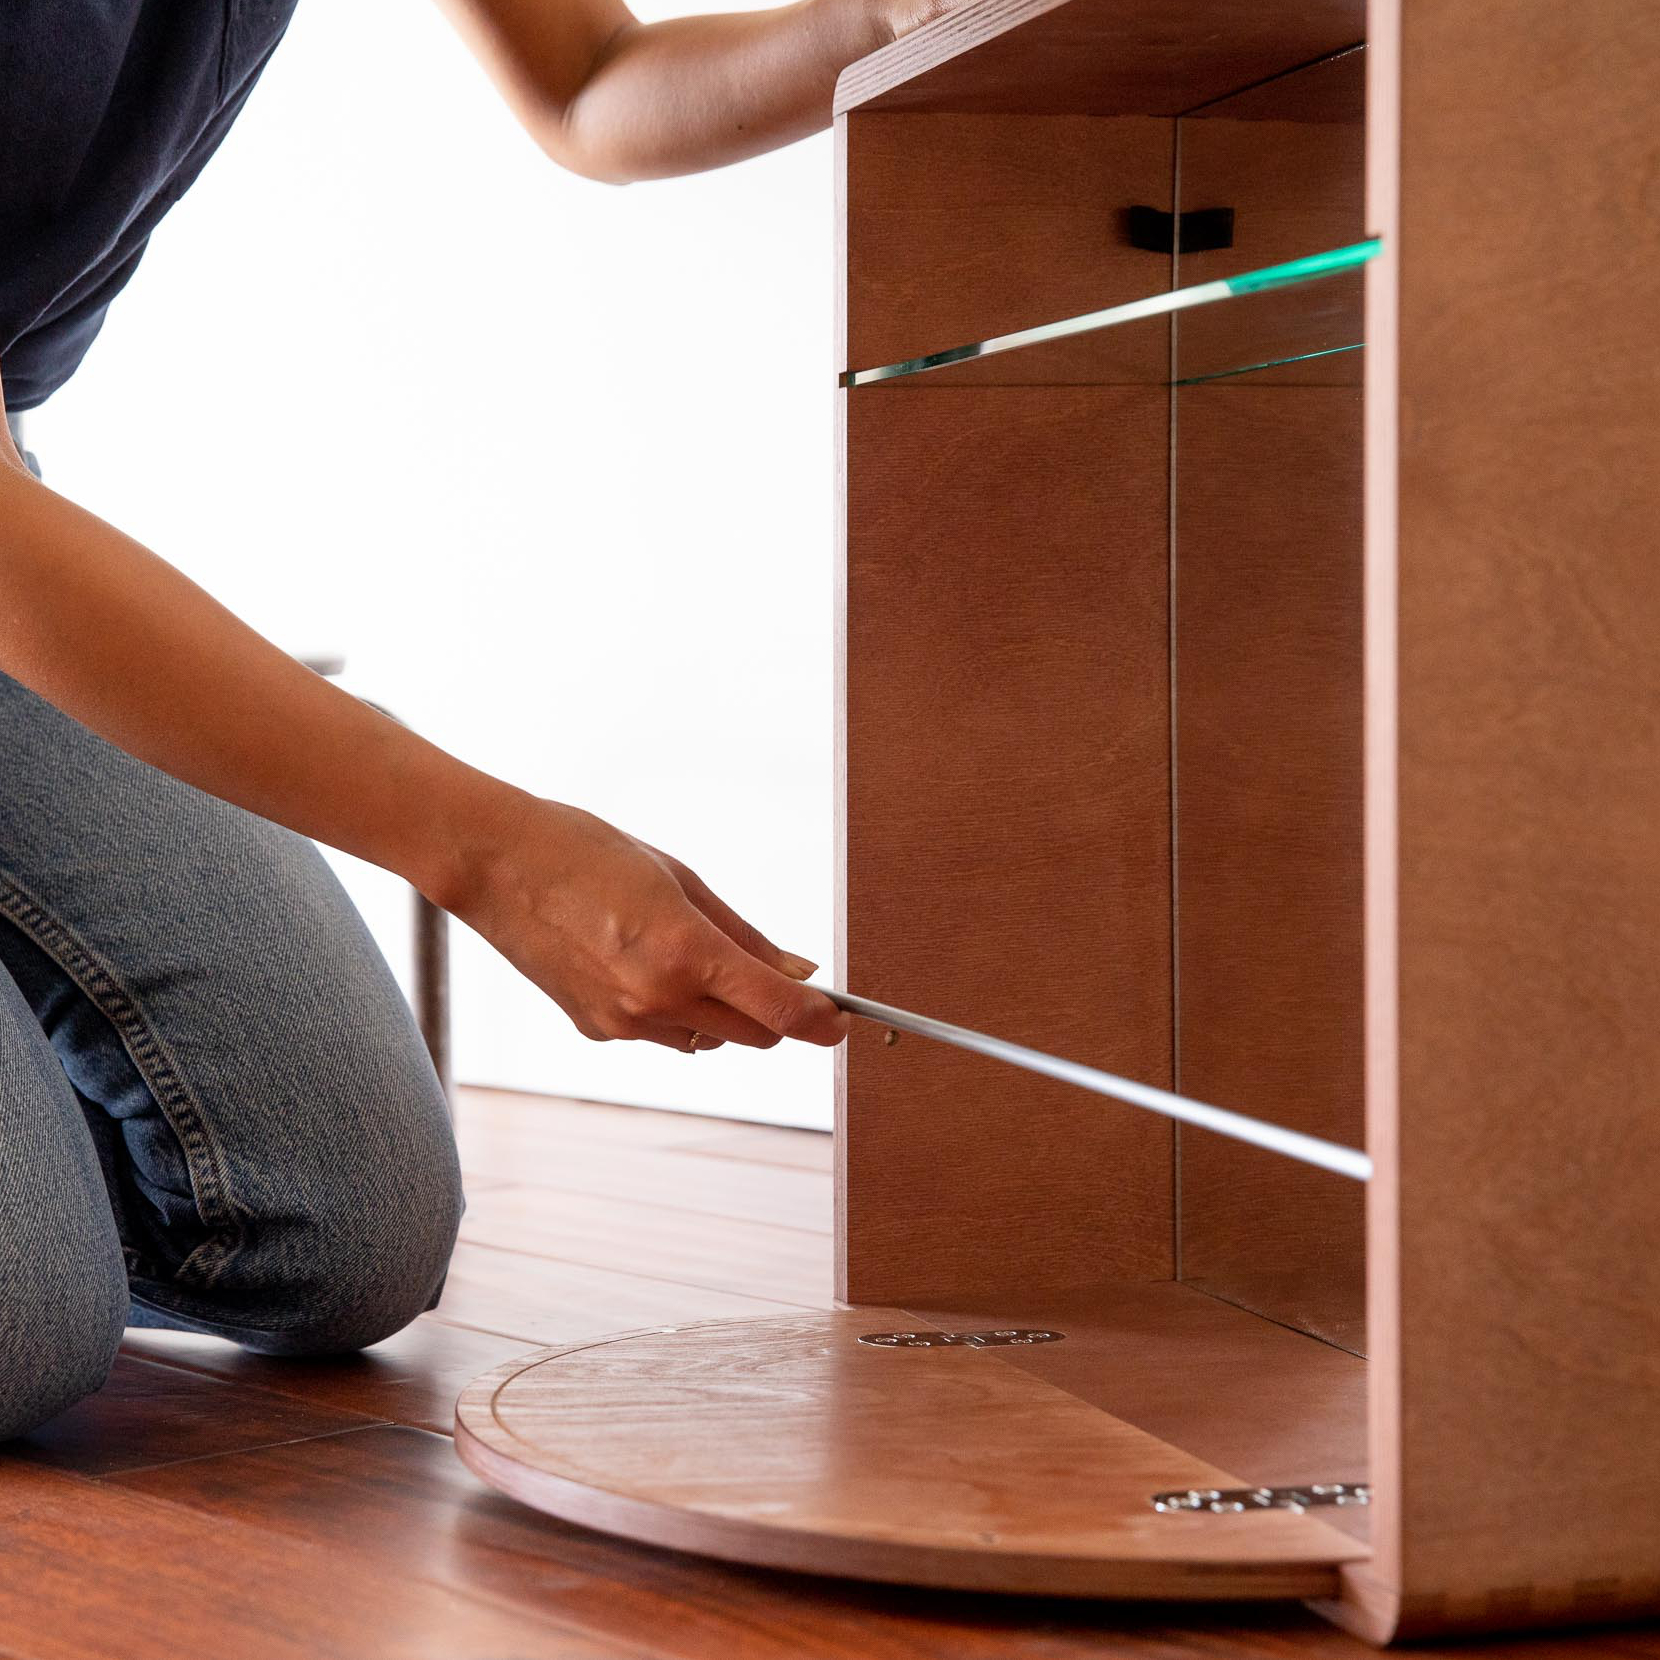 housevh-how-to-install-wall-cases-2b.jpg